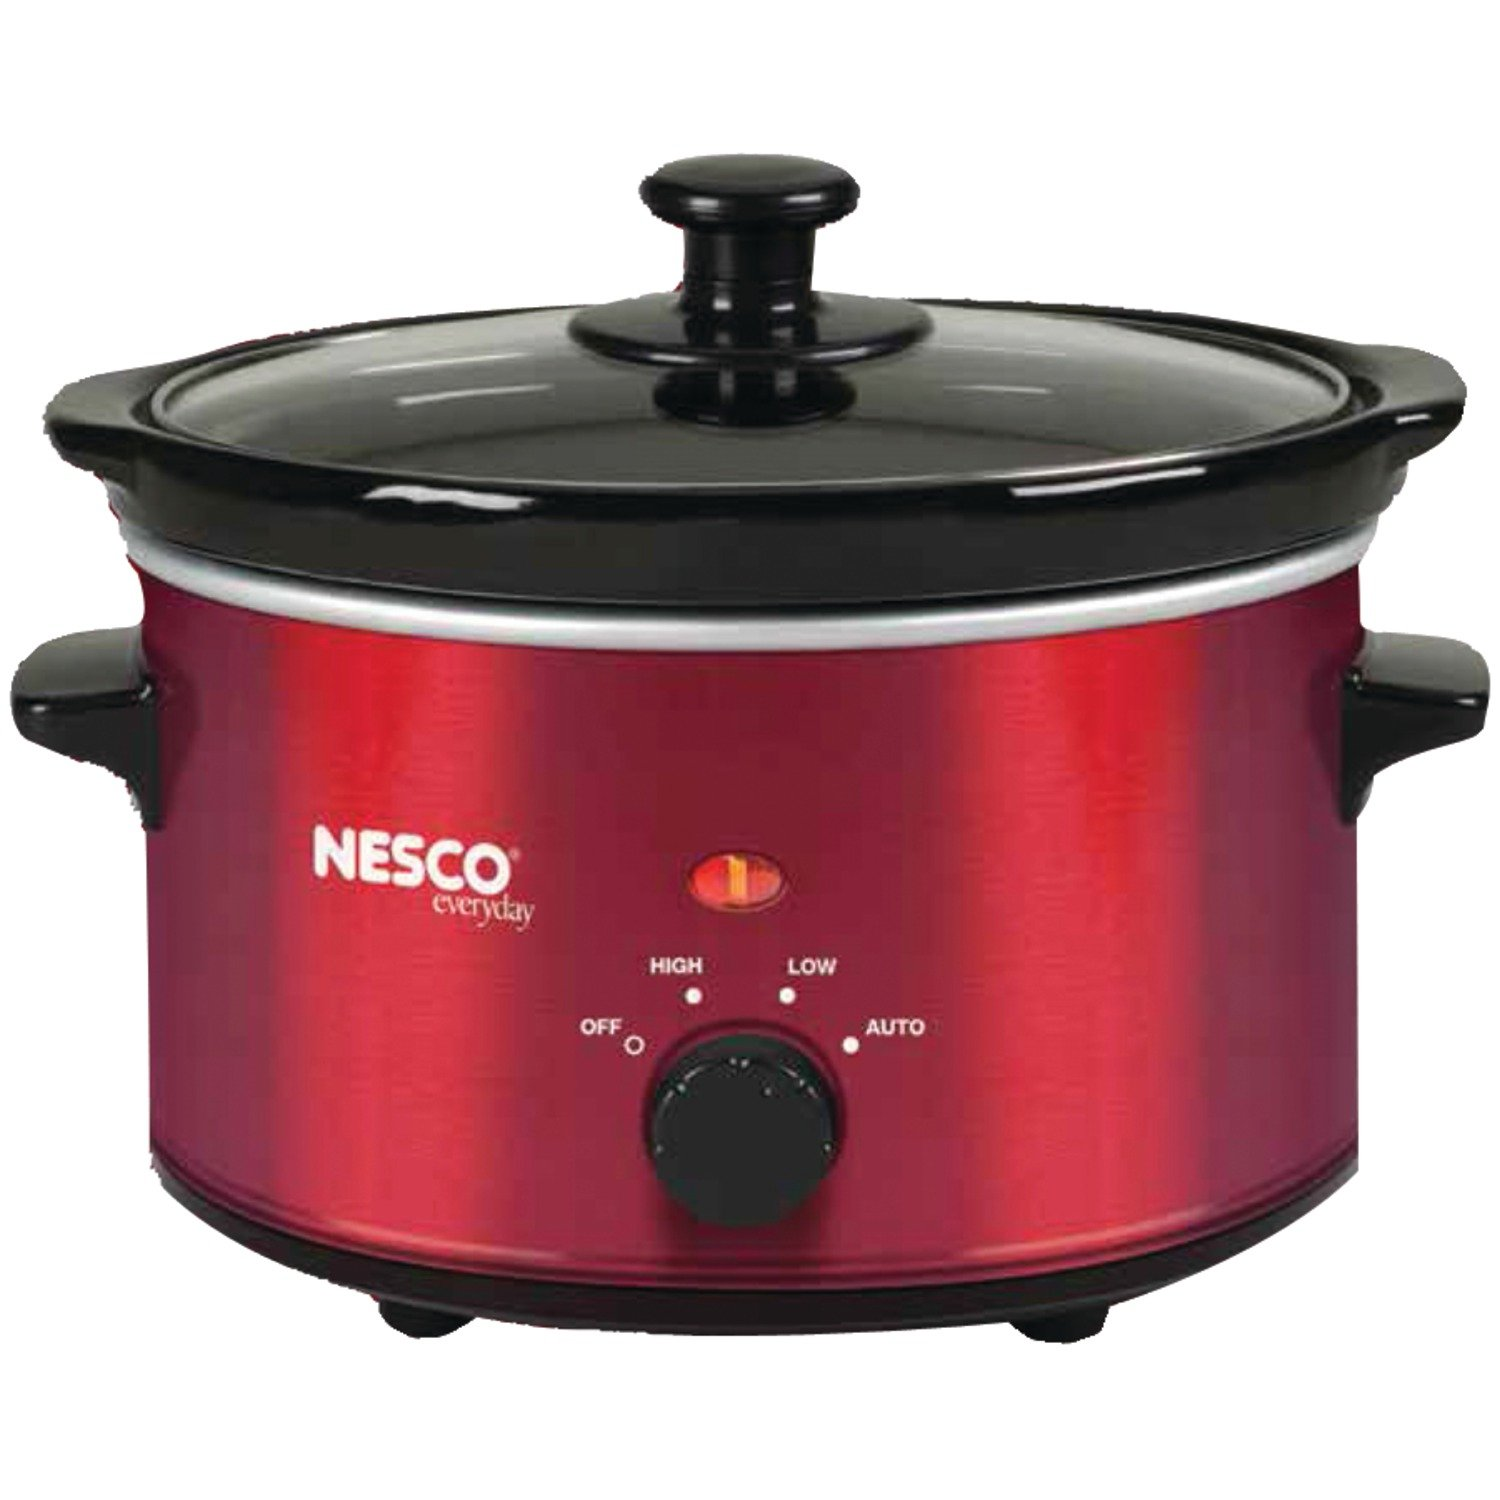 Nesco SC-150R Oval Slow Cooker, 1.5-Quart, Red